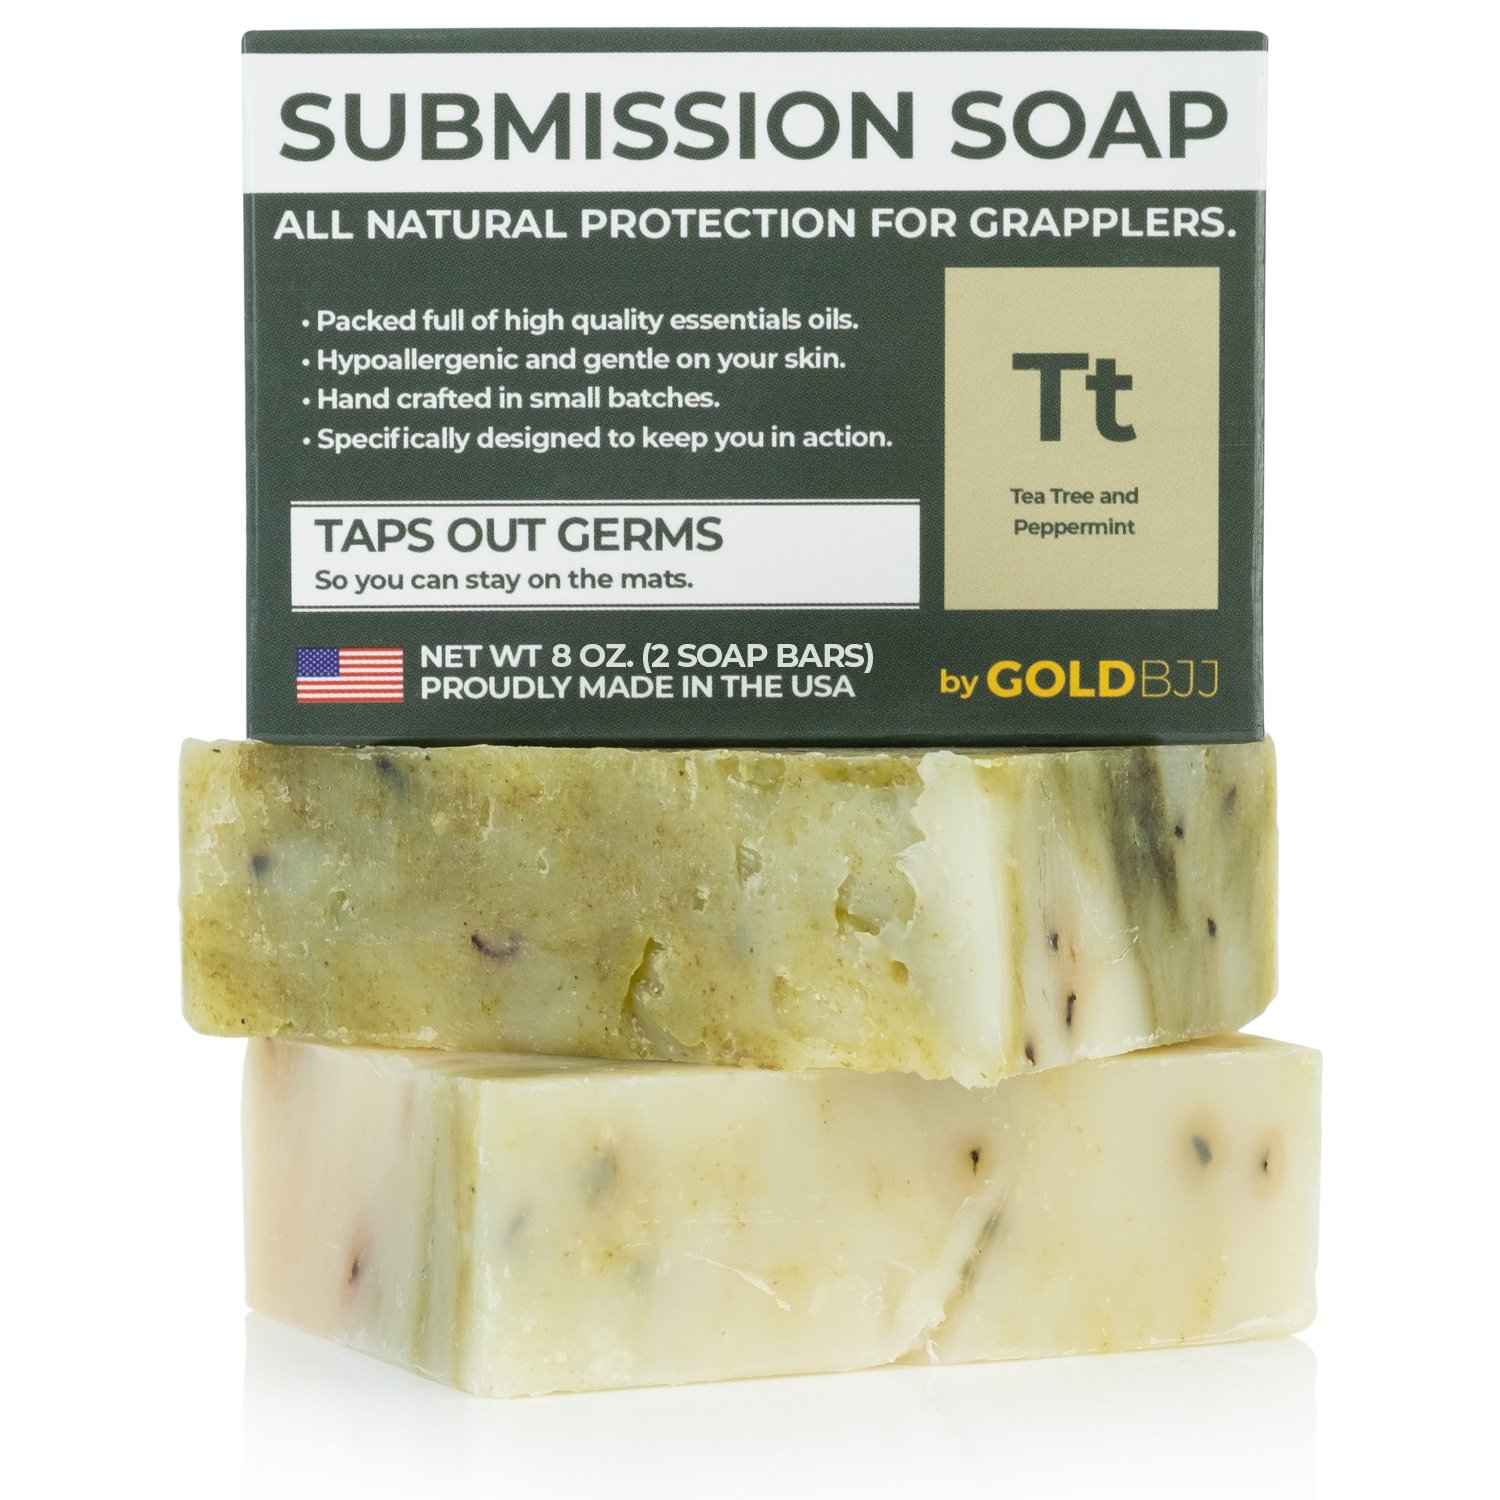 Premium Tea Tree Oil Soap - With Peppermint! 100% All Natural USA Made Bars for BJJ, Jiu Jitsu, Wrestling, and Grappling (2-Pack of 4 Ounce Soap Bars)